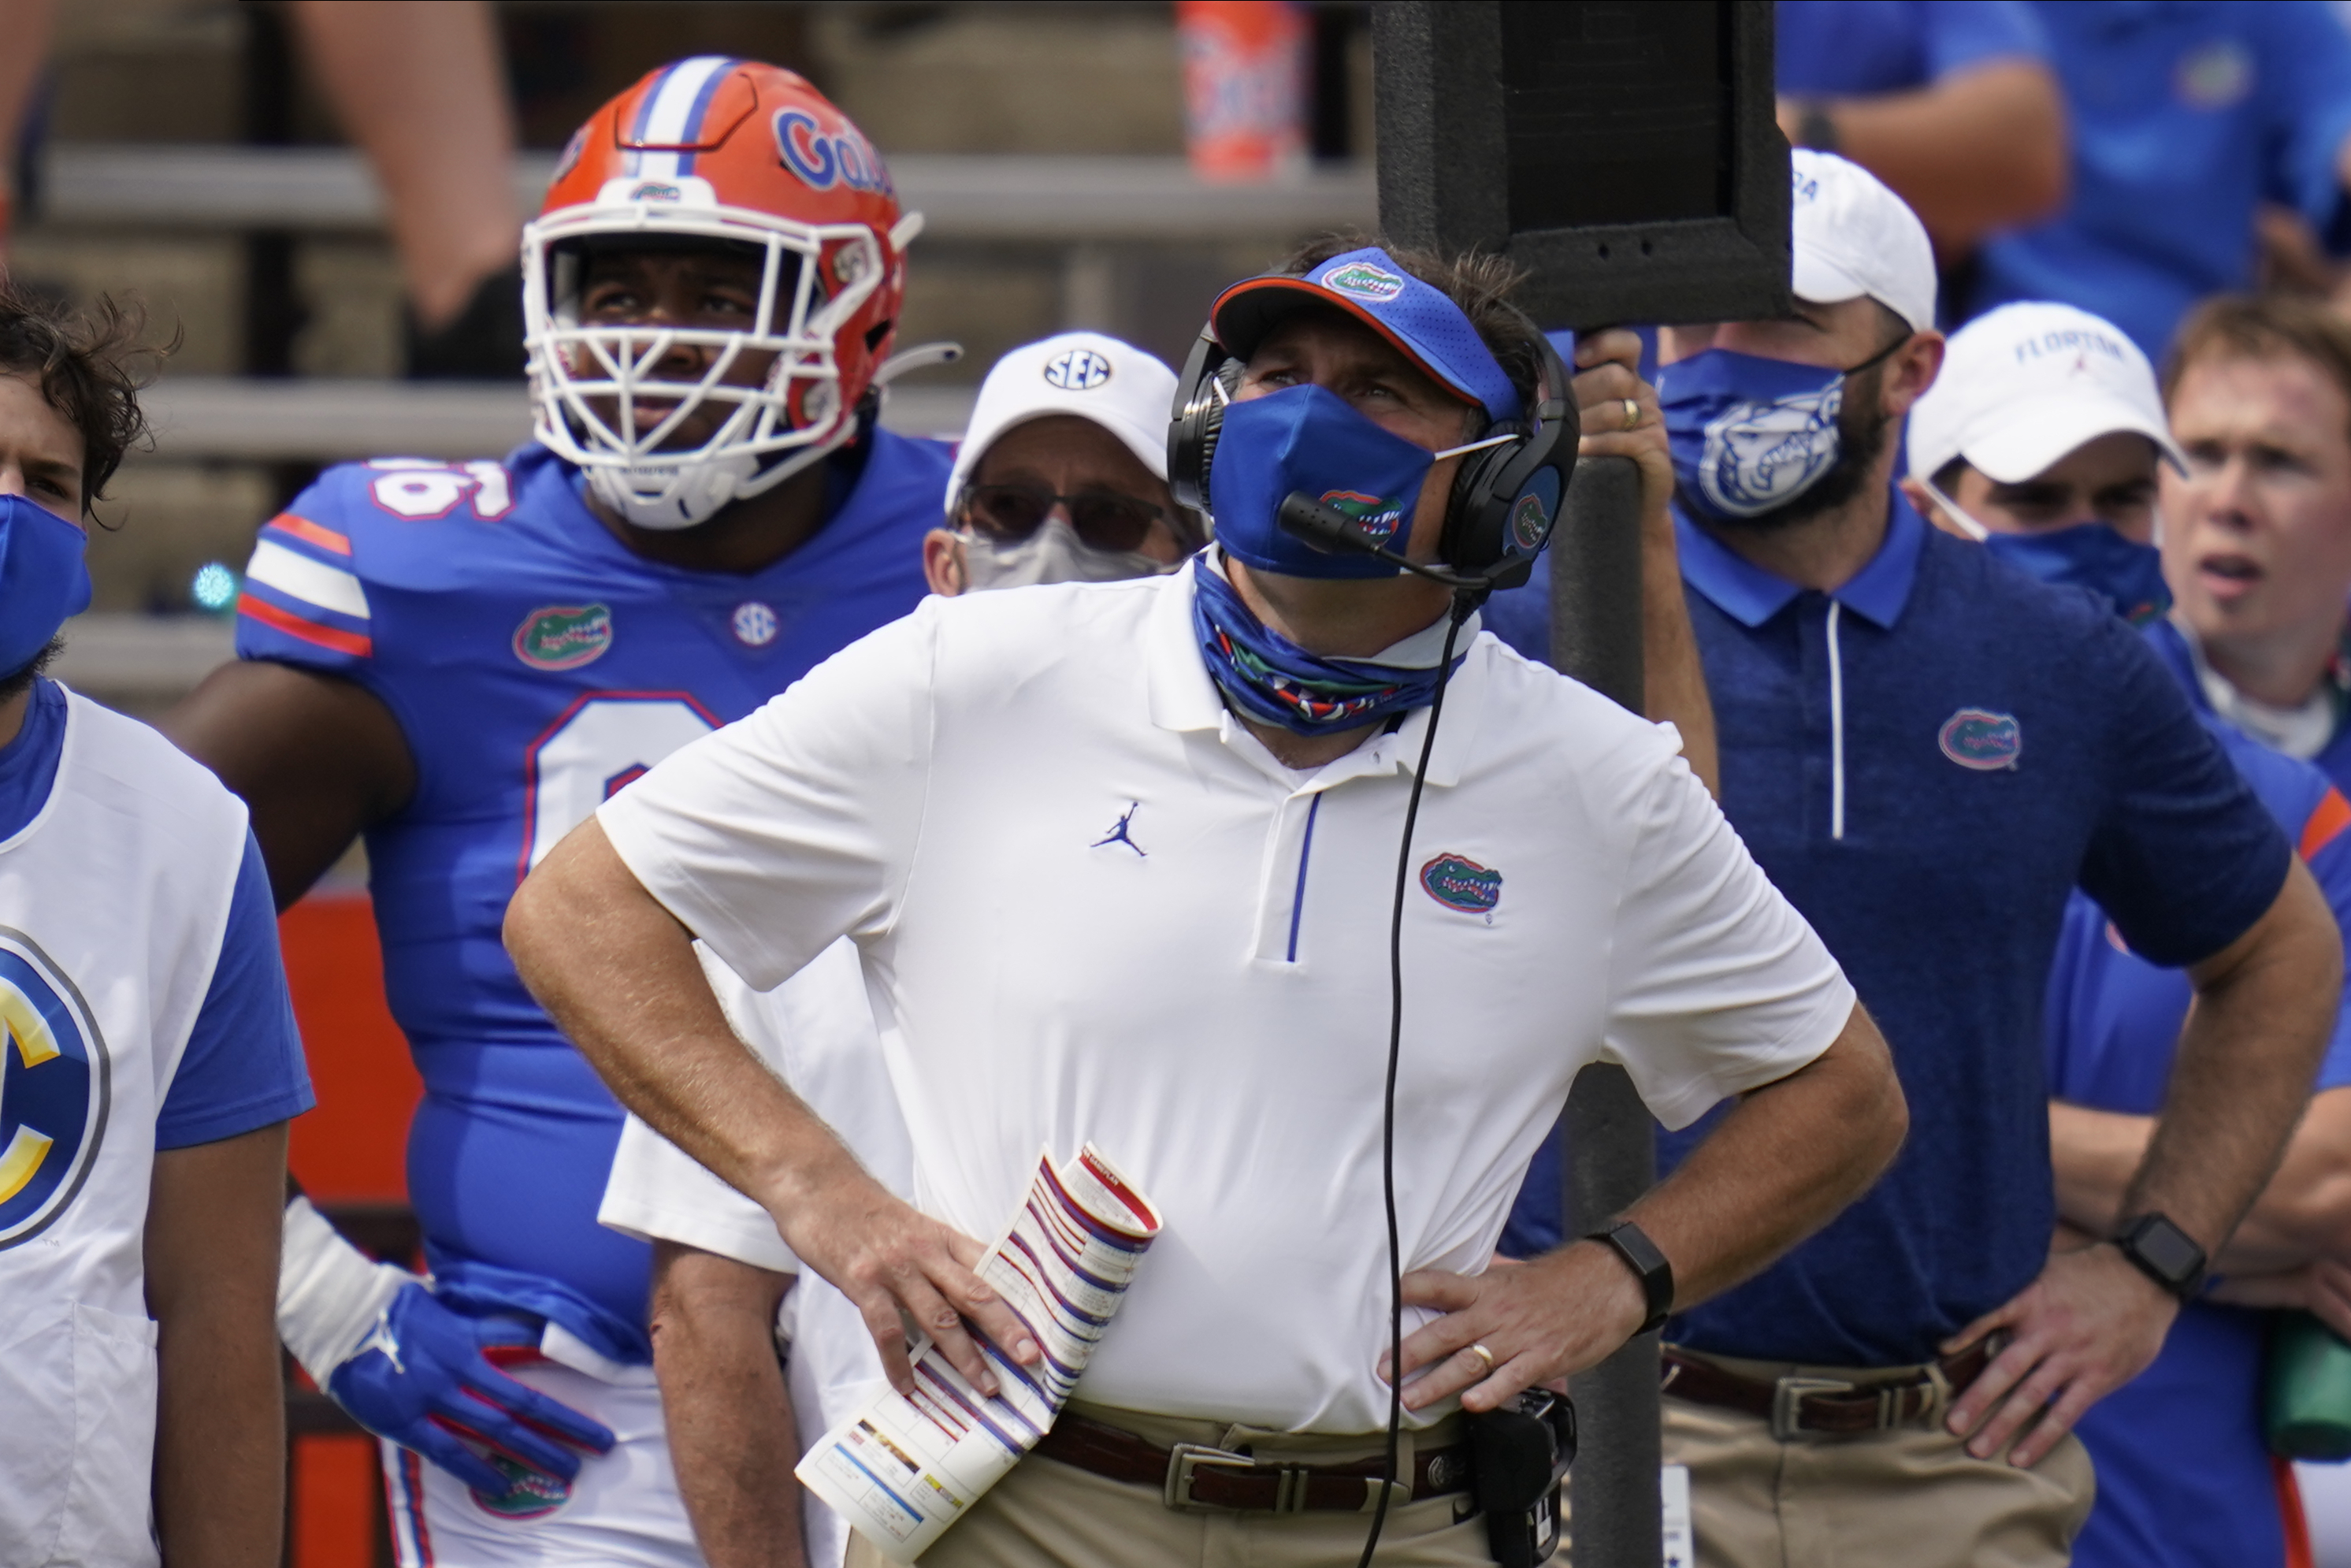 Florida Announces 25 Gators Football Players Tested Positive For Covid 19